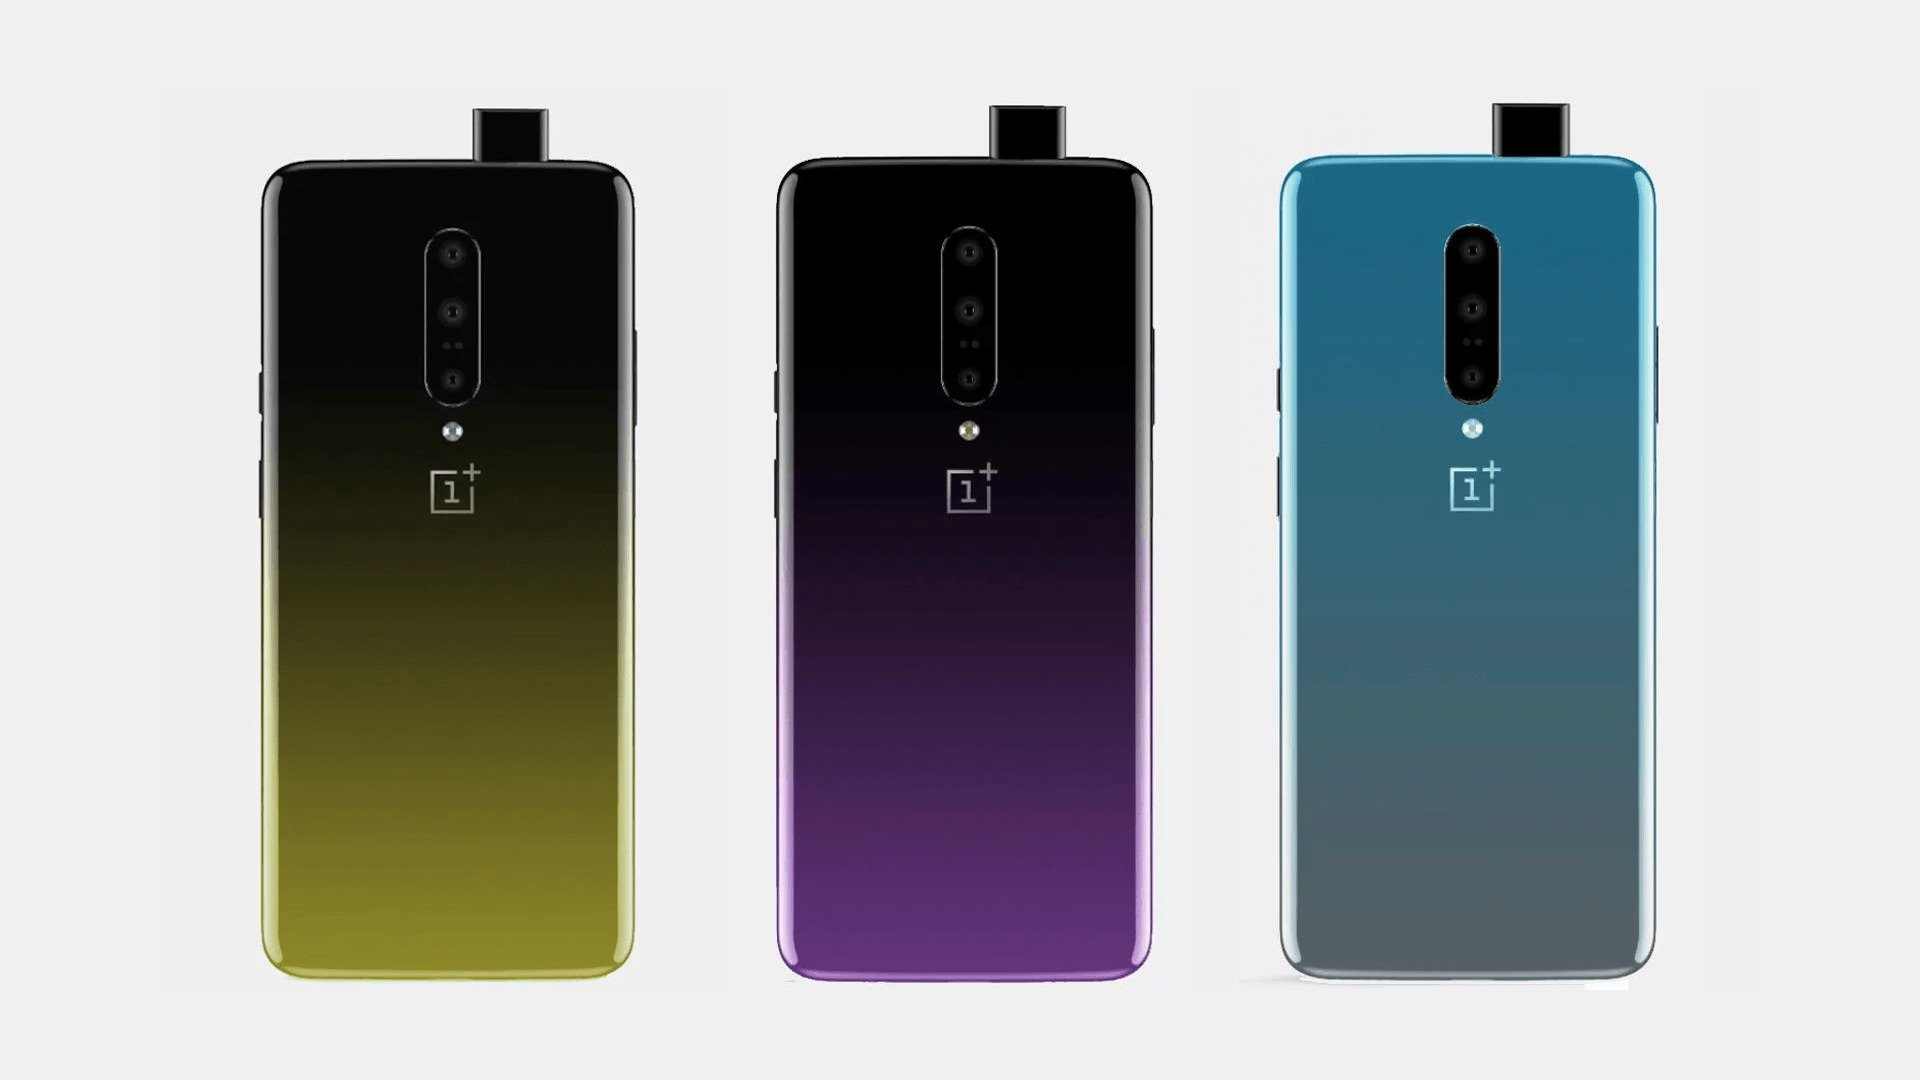 OnePlus 7 series is confirmed to have super-fast UFS 3.0 storage